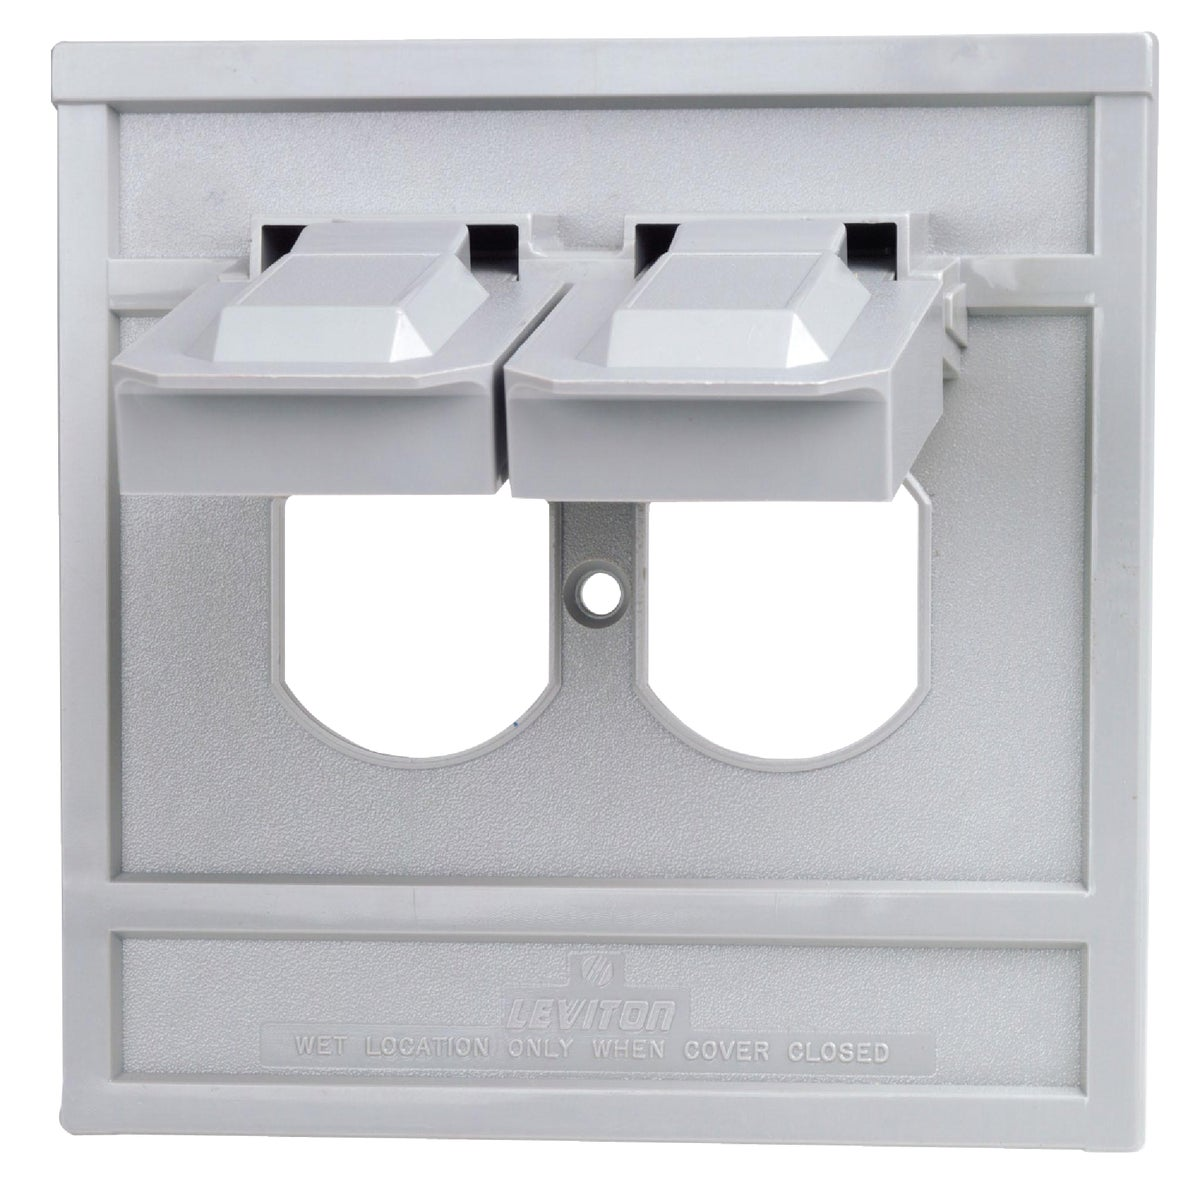 Leviton Commercial Grade Weatherproof Outdoor Outlet Cover, 0004986GY